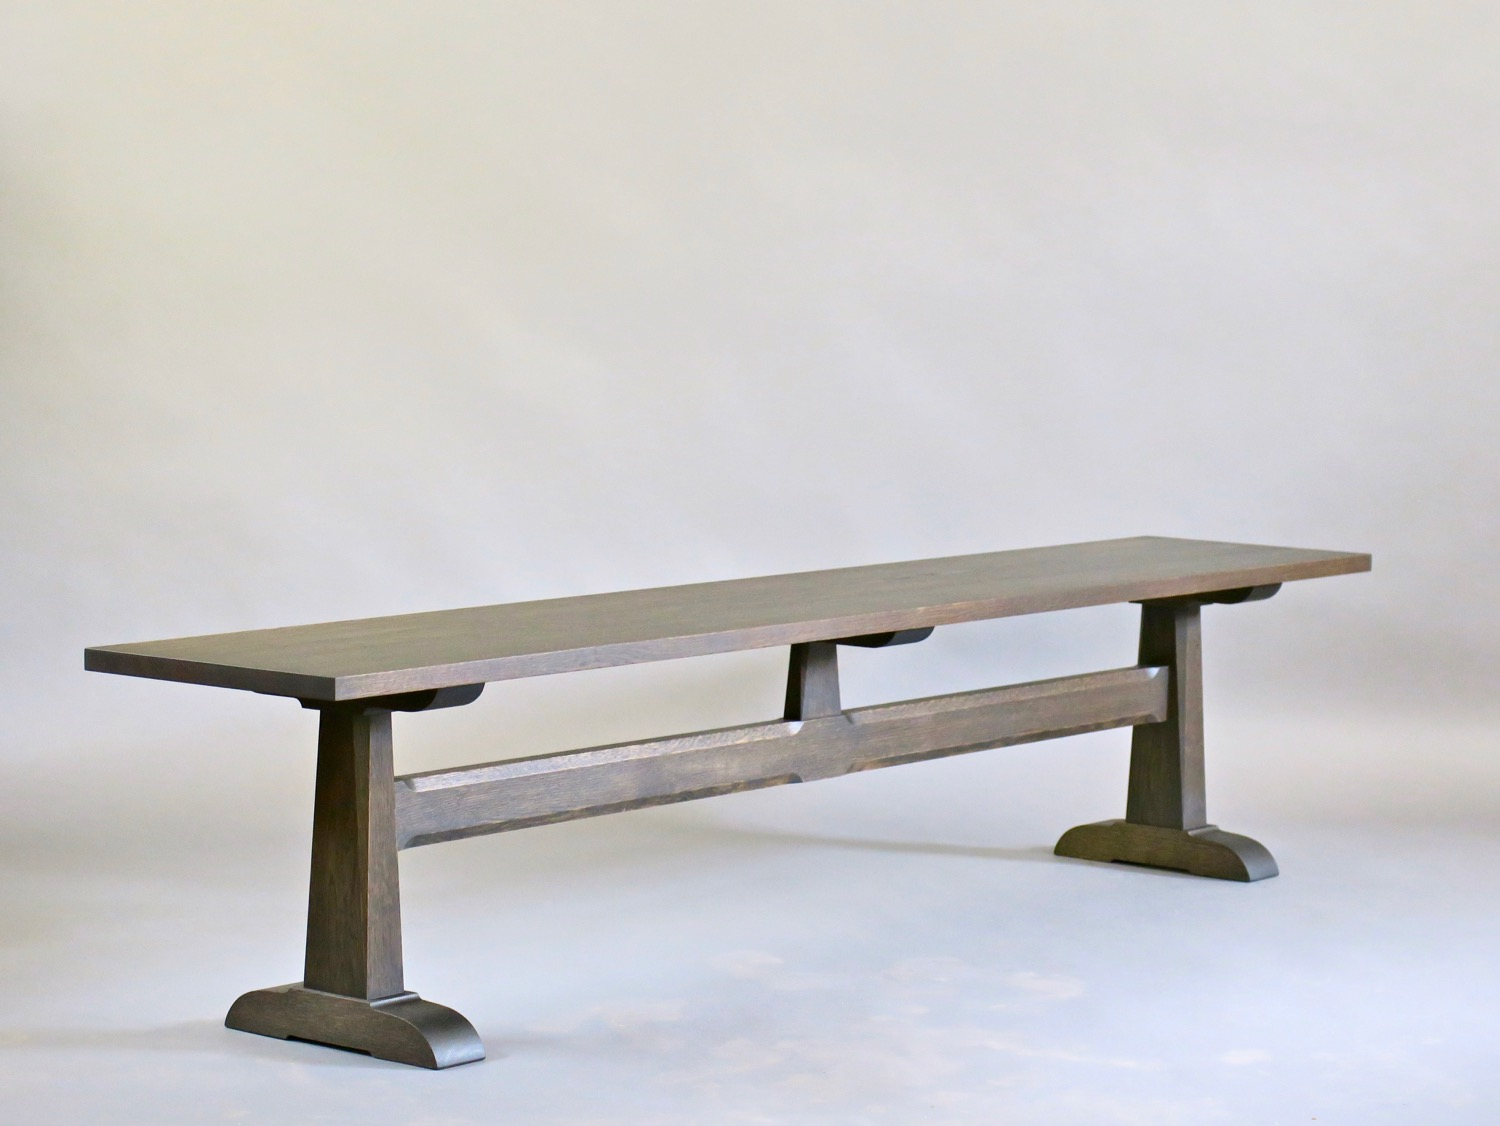 Pedersen dining bench